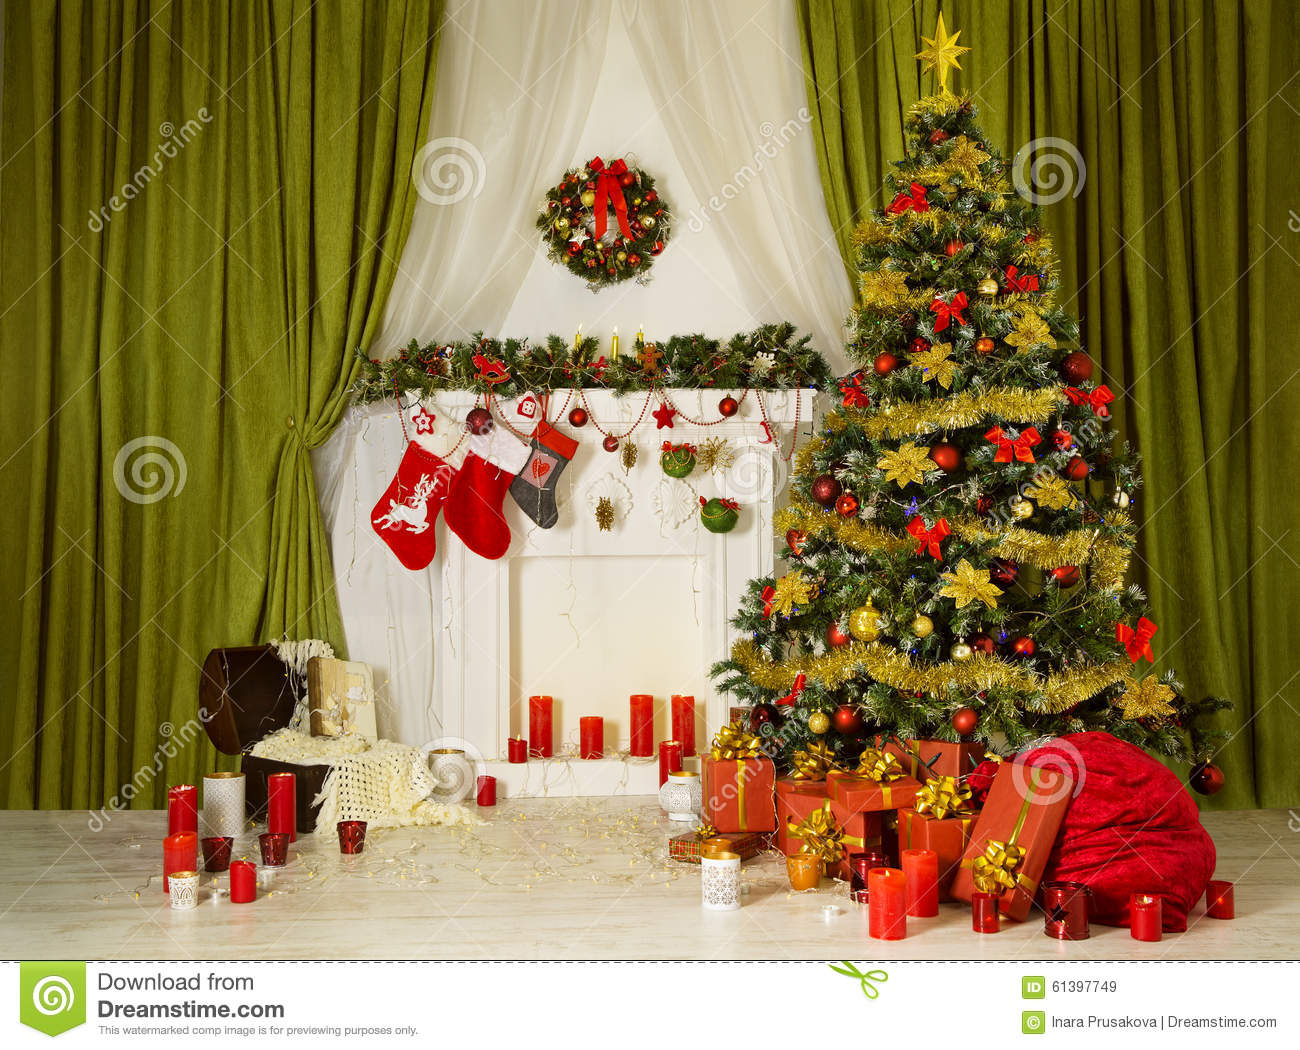 christmas room xmas tree decorated home interior fireplace sock bag christmas decorated fireplace gifts hanging home interior